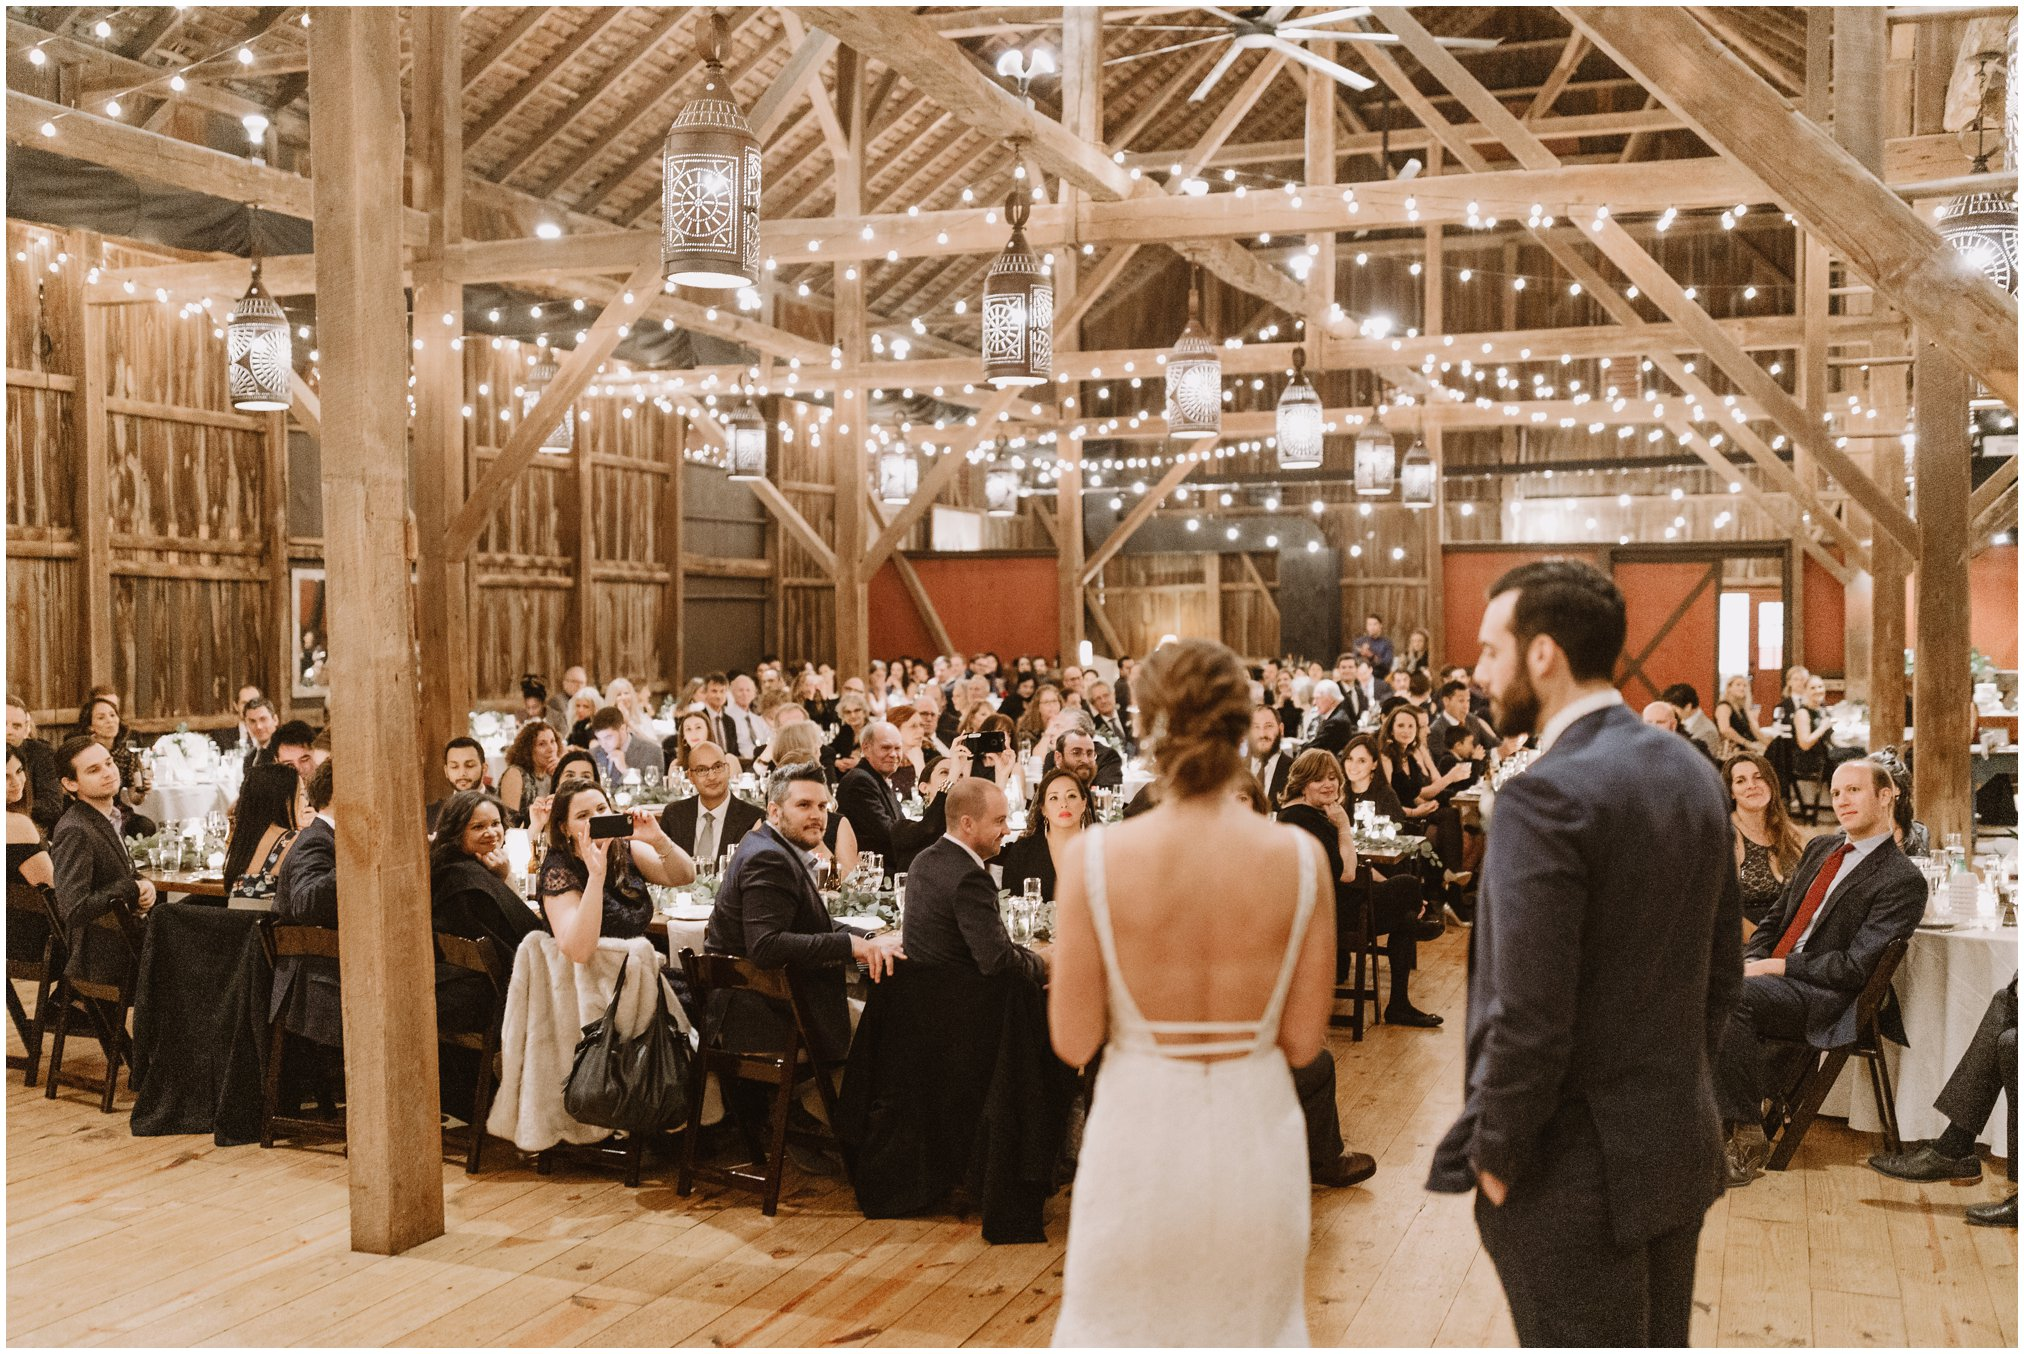 Bride and groom first dance in barn with string lights